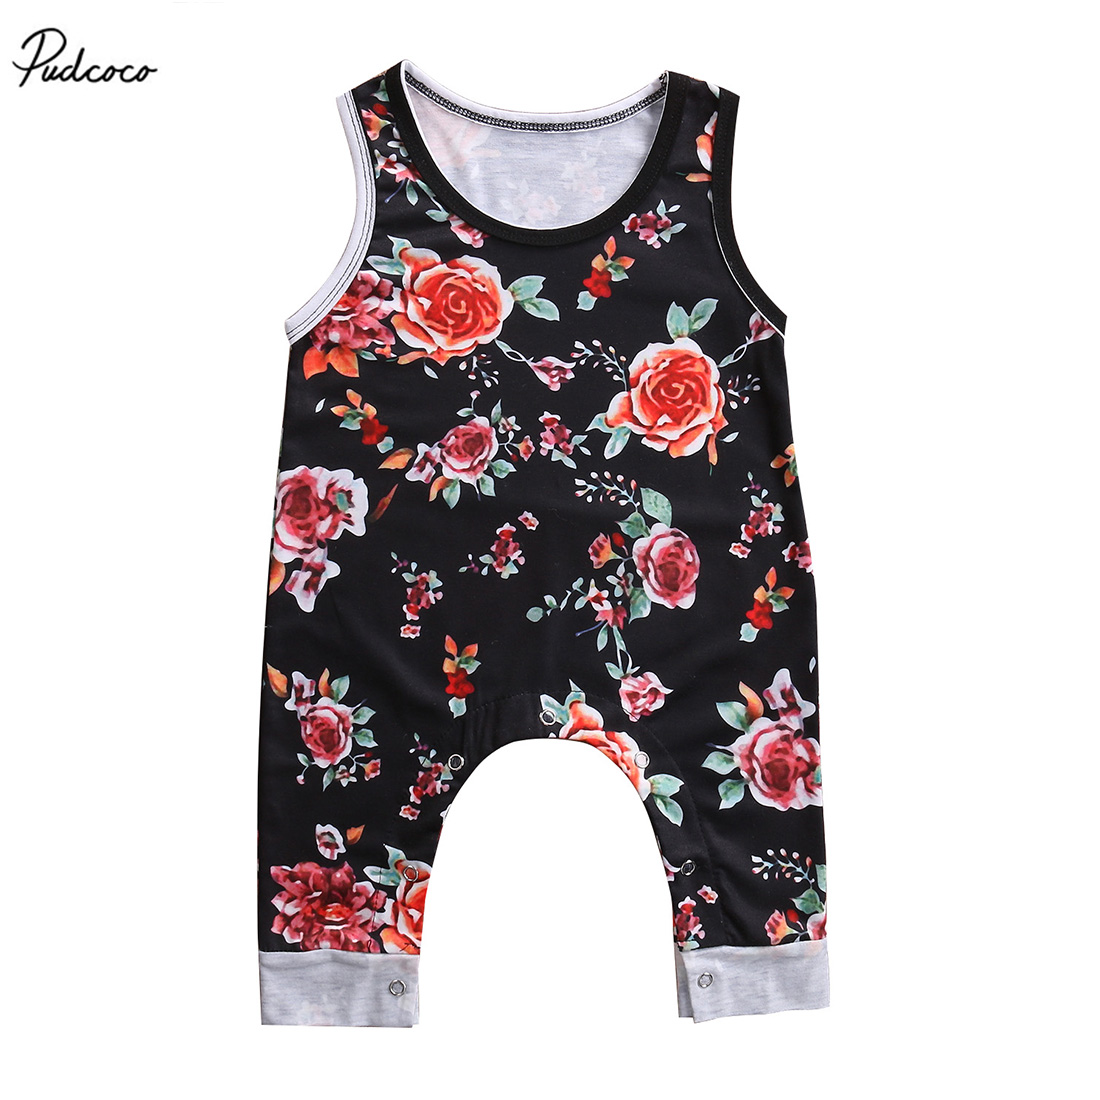 Newborn Infant Baby Girls Floral   Romper   Sleeveless Black Jumpsuit 2017 New Summer Clothes Outfits Sunsuit